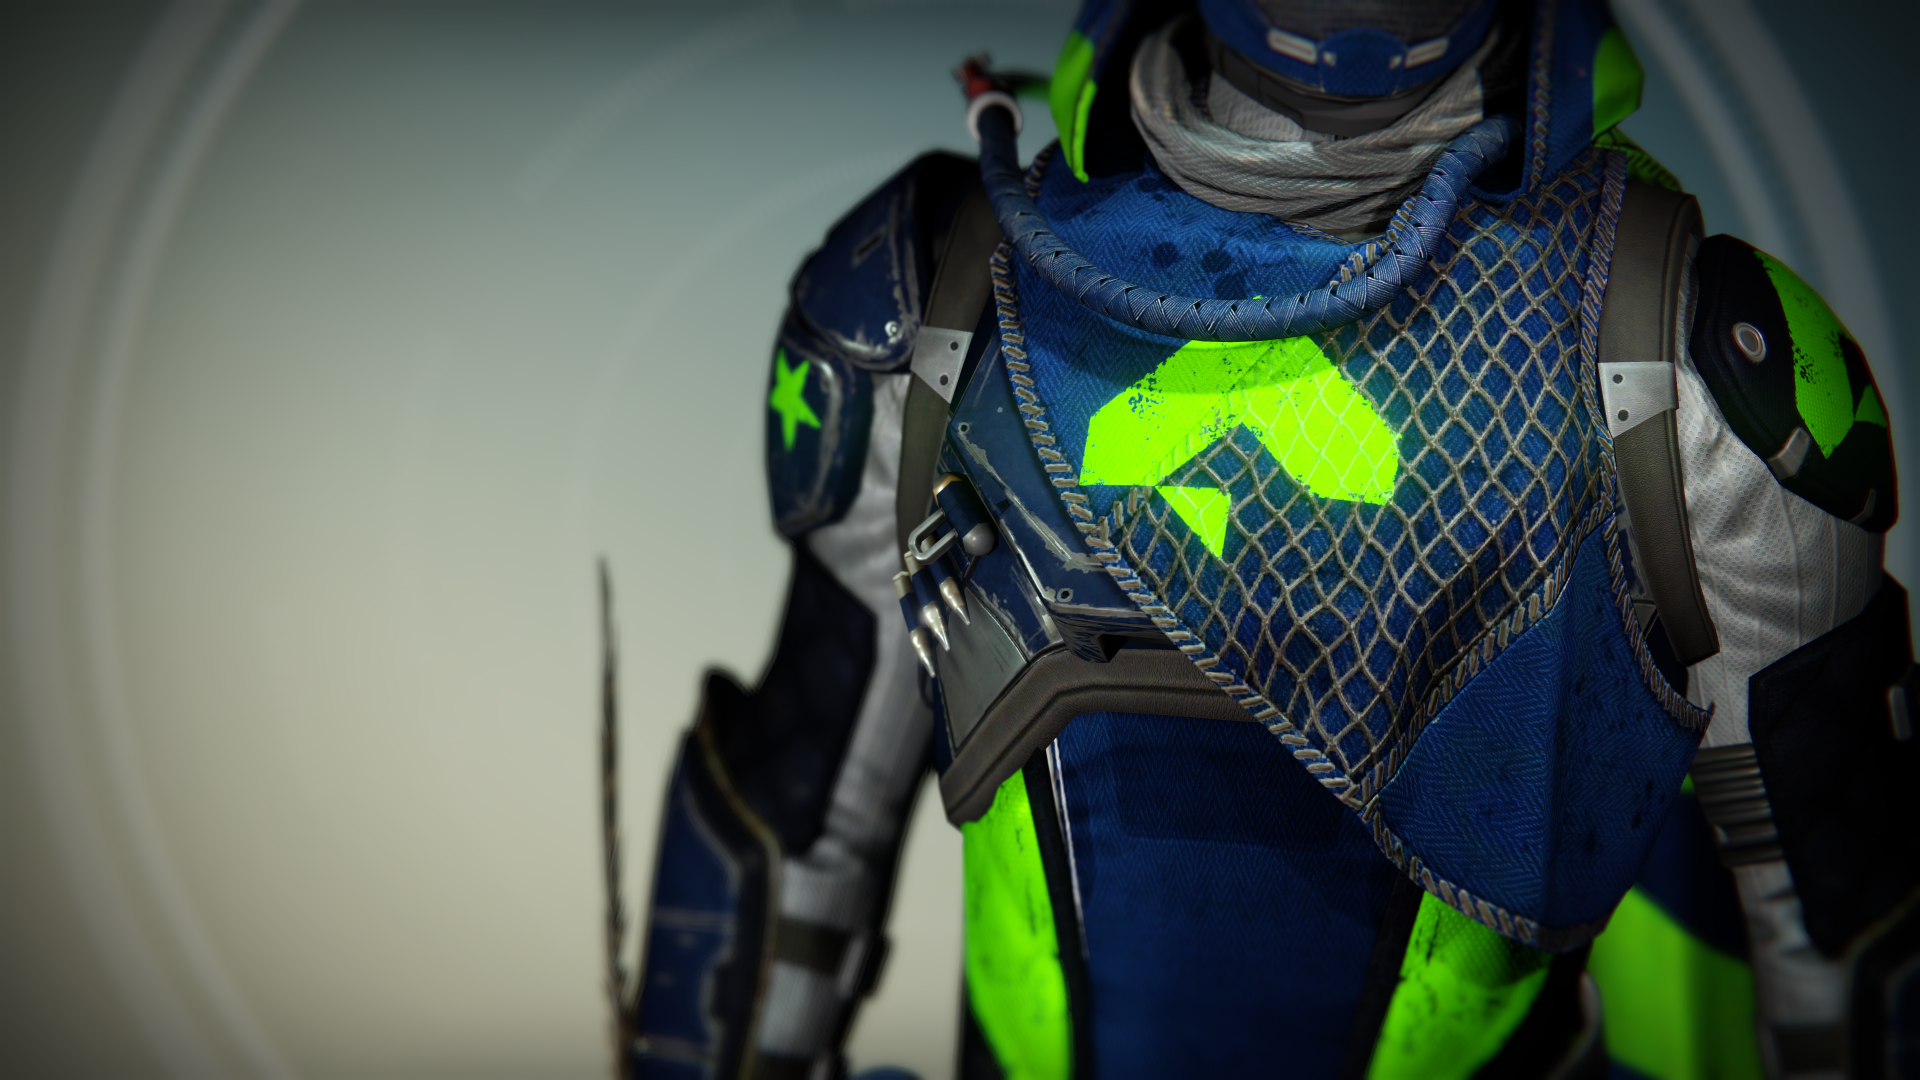 New Armor, Weapons, Locations & More! | 1920 x 1080 png 2695kB